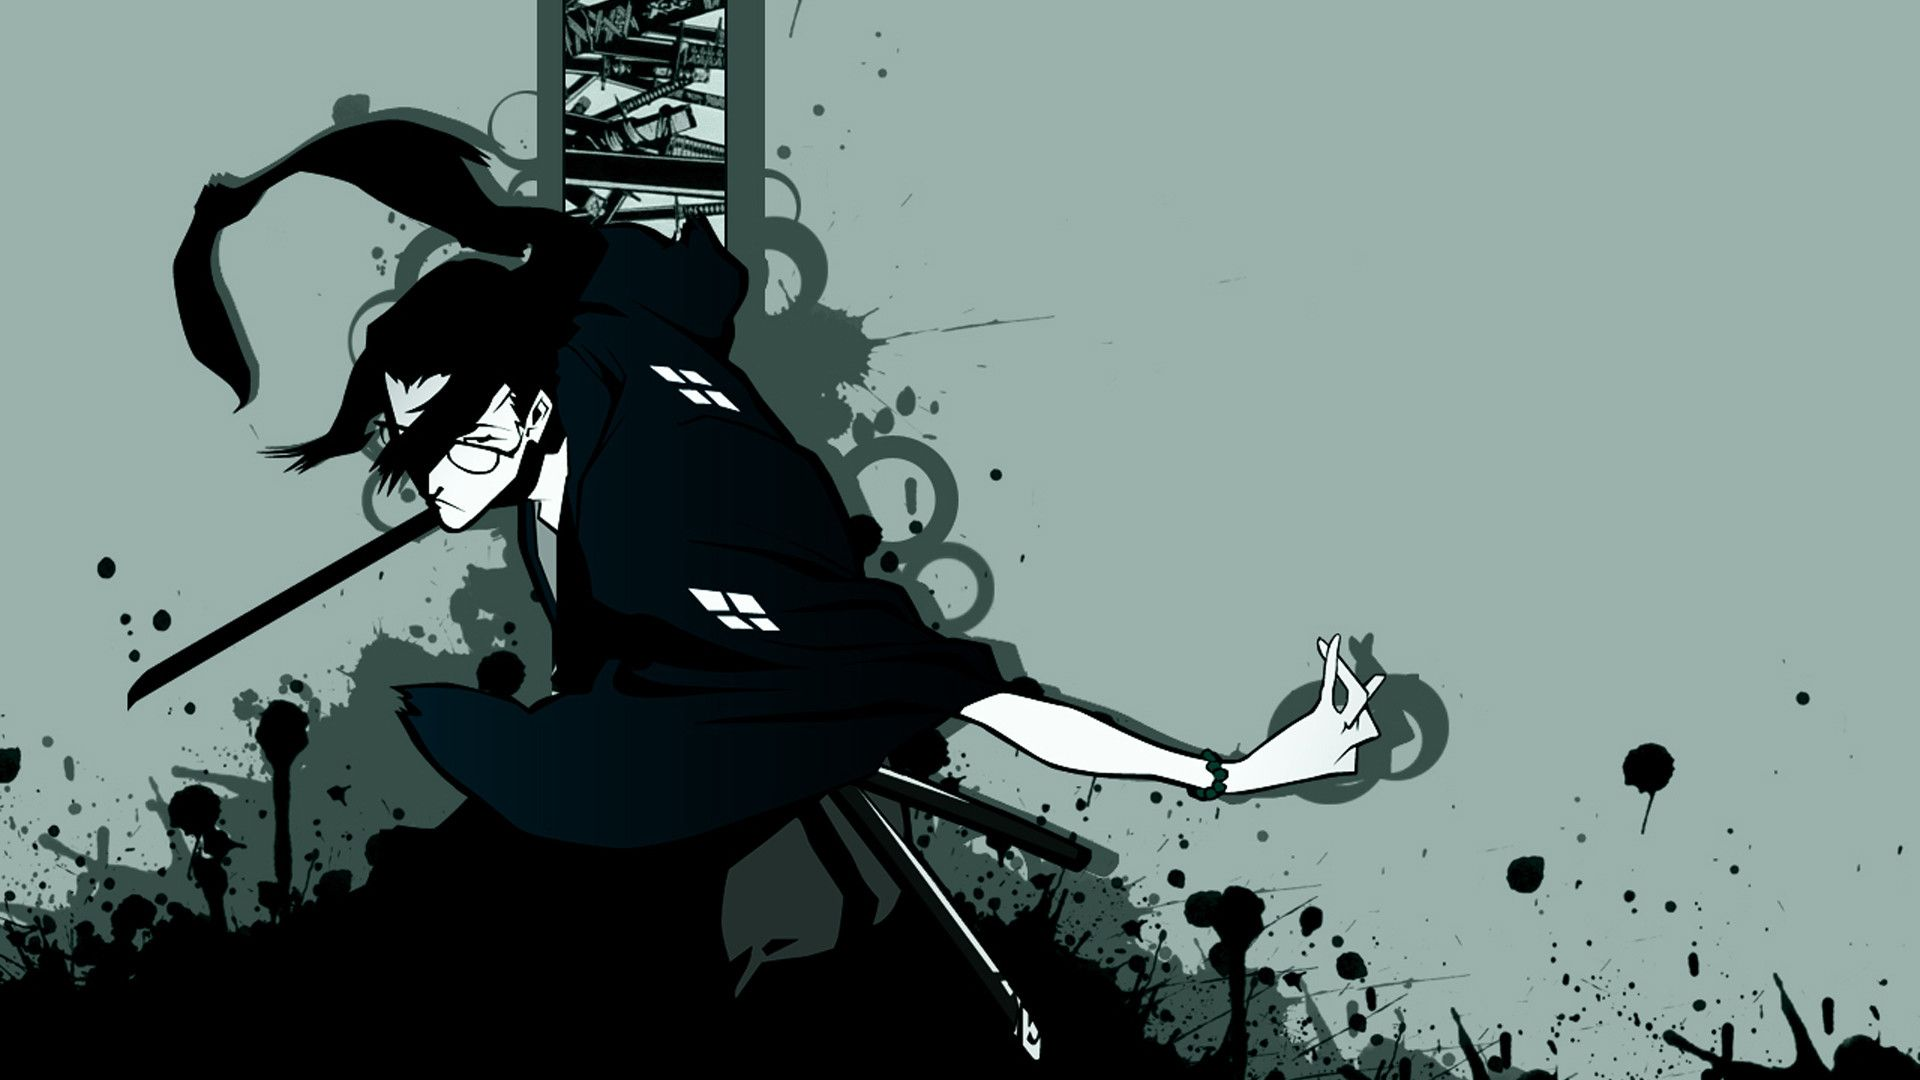 Anime Samurai Wallpaper Phone Feel Free To Download Share Comment And Discuss Every Wallpaper You Like If In 2020 Samurai Champloo Samurai Wallpaper Anime Wallpaper